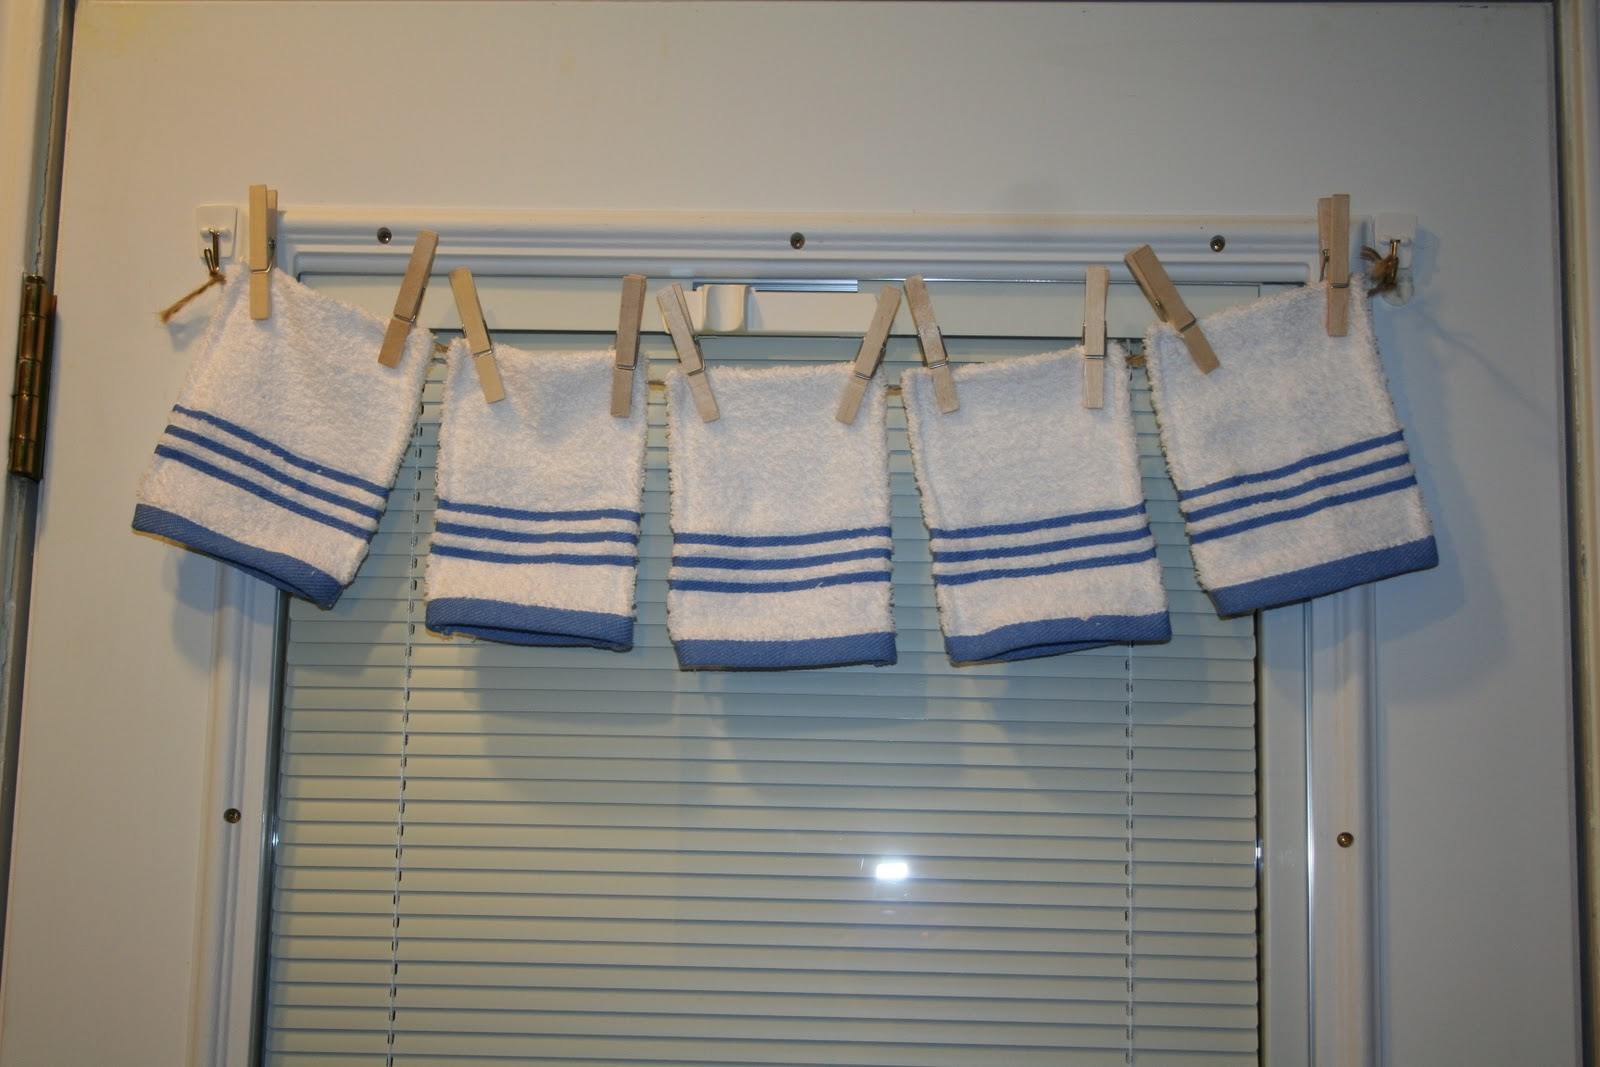 Uncategorized Laundry Room Curtains done by deon my laundry room curtains curtains